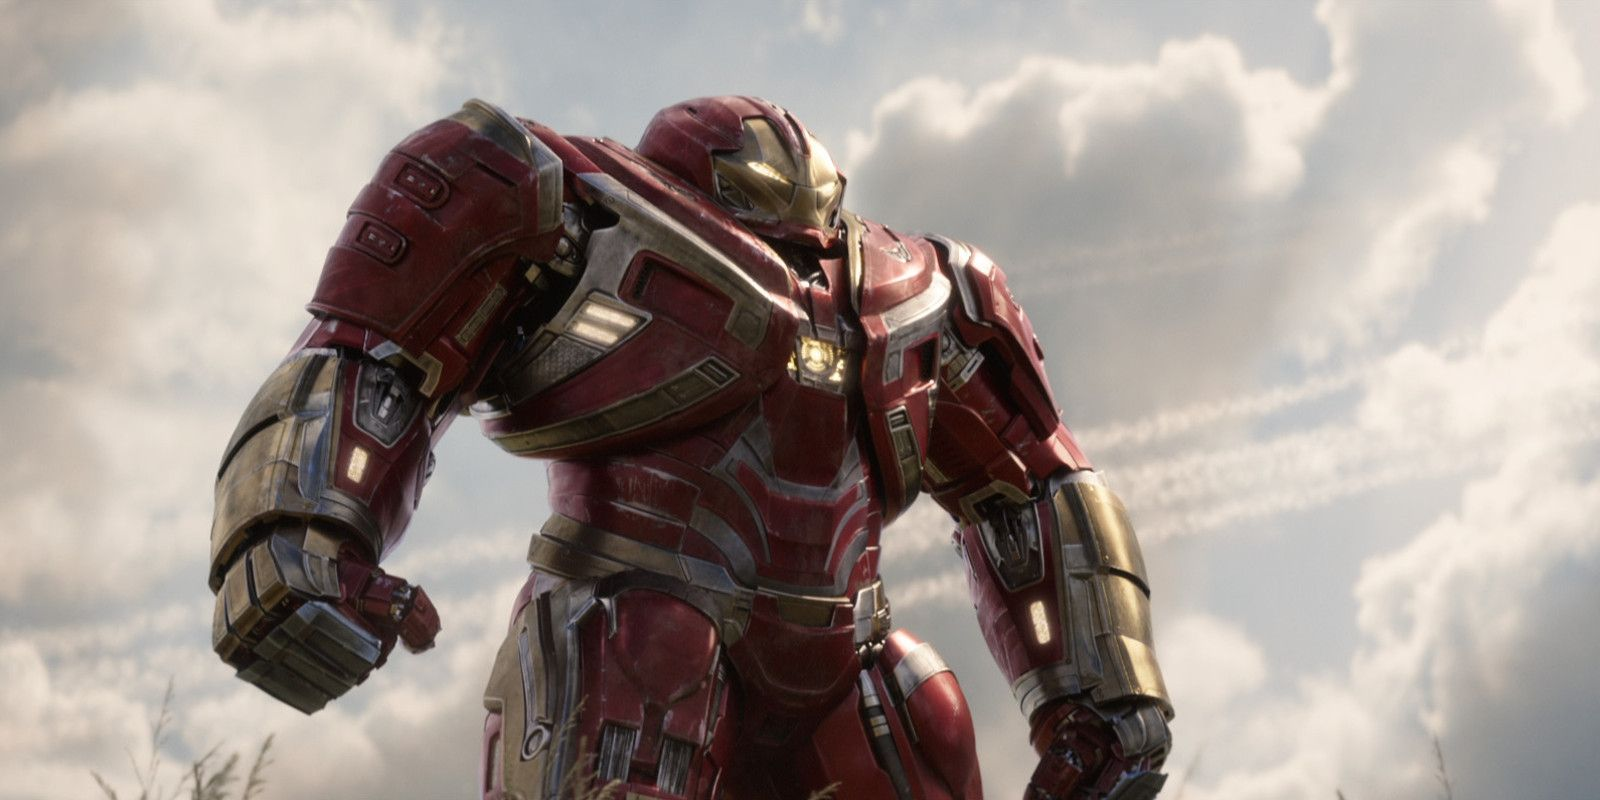 Avengers Endgame International Poster Reveals Hulkbuster Armor Returns